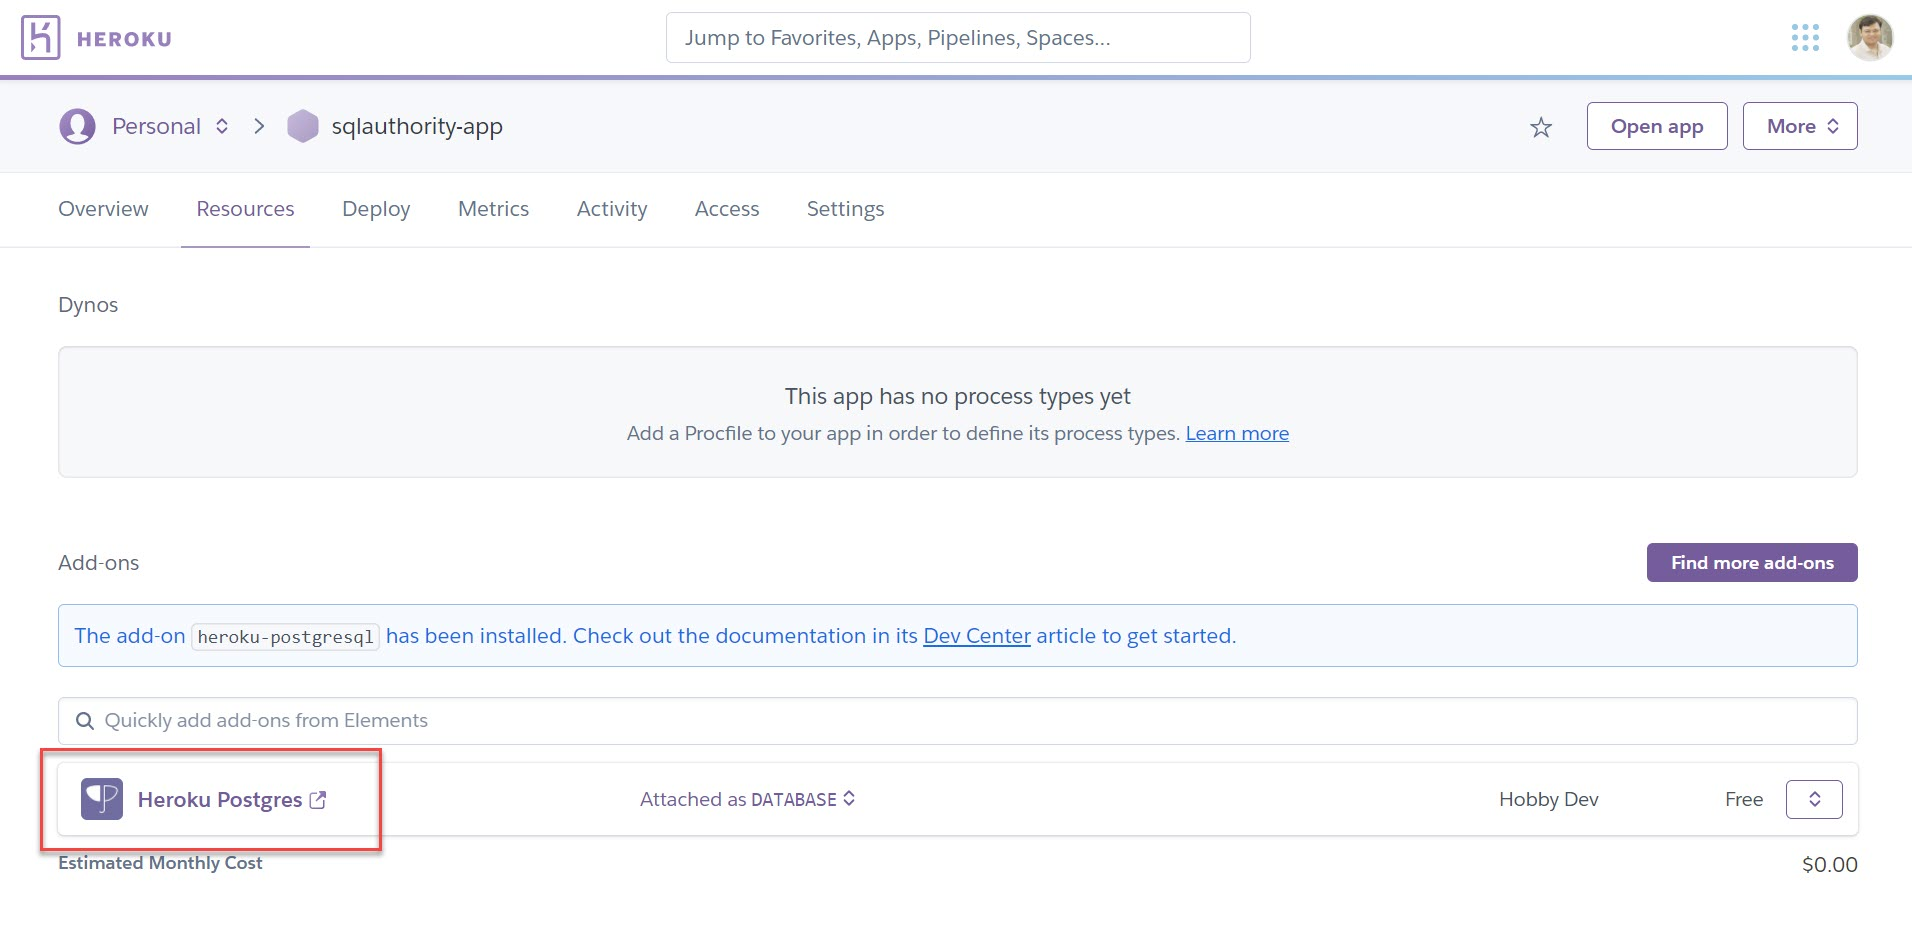 Heroku - How to Deploy Postgres Add-Ons? herokuapp6